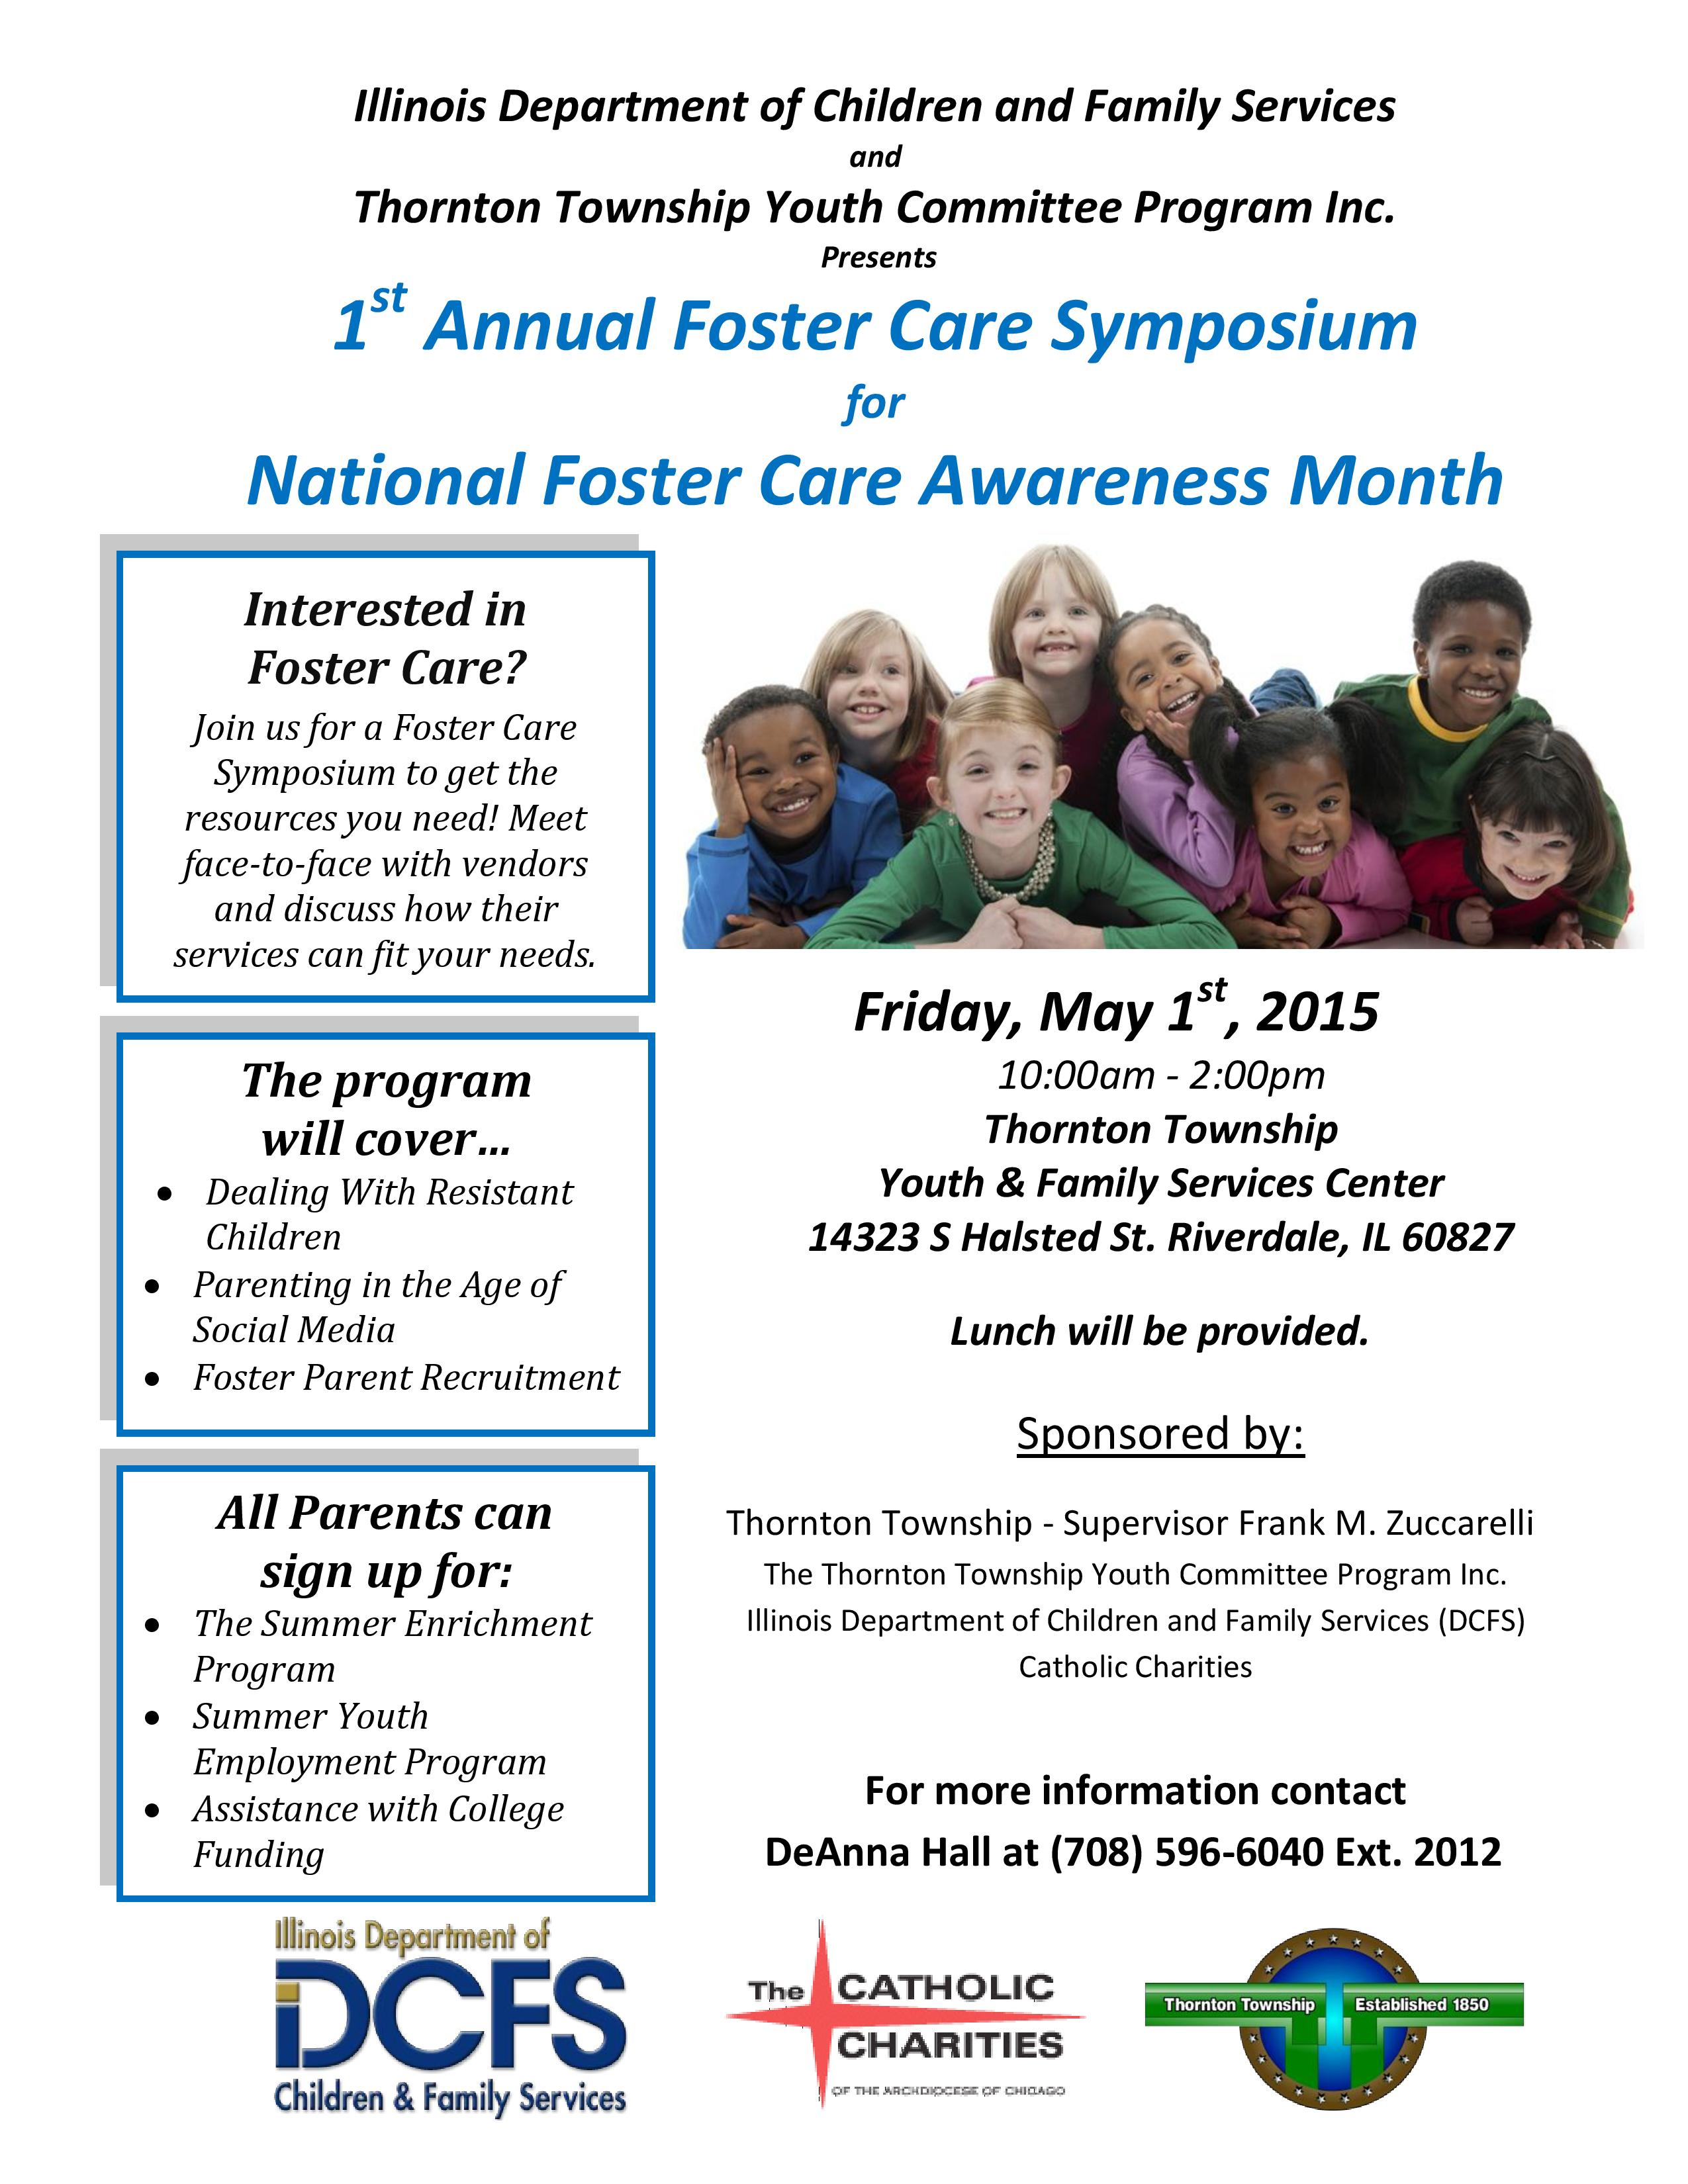 Foster Care Symposium Flyer 2015 (Final)-page-001